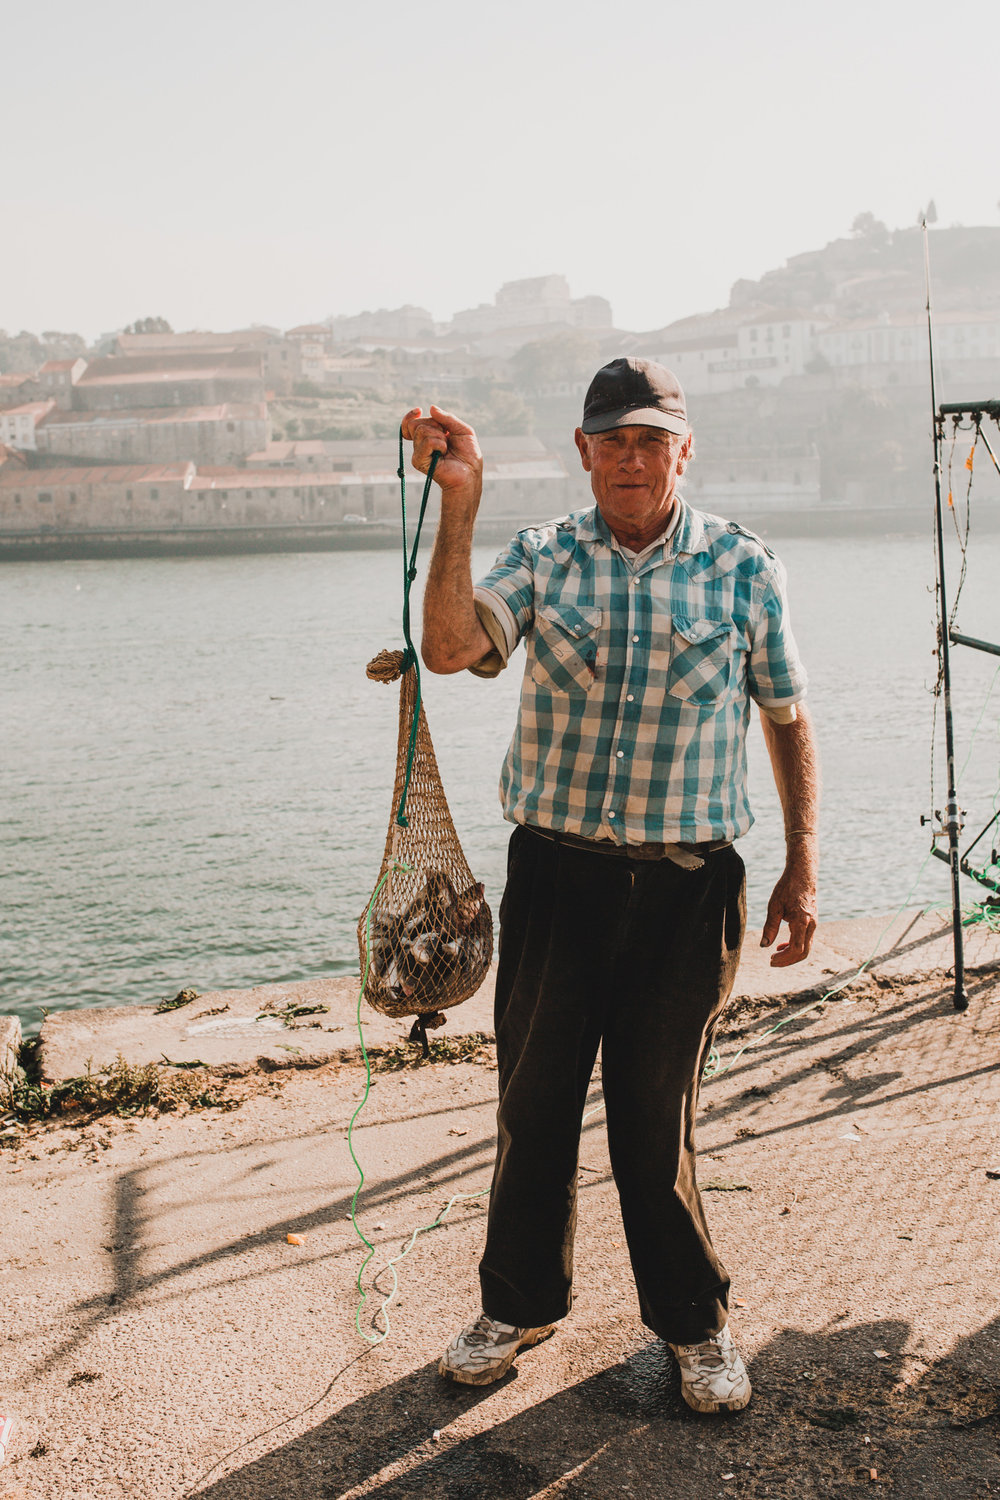 Fisherman in Portugal